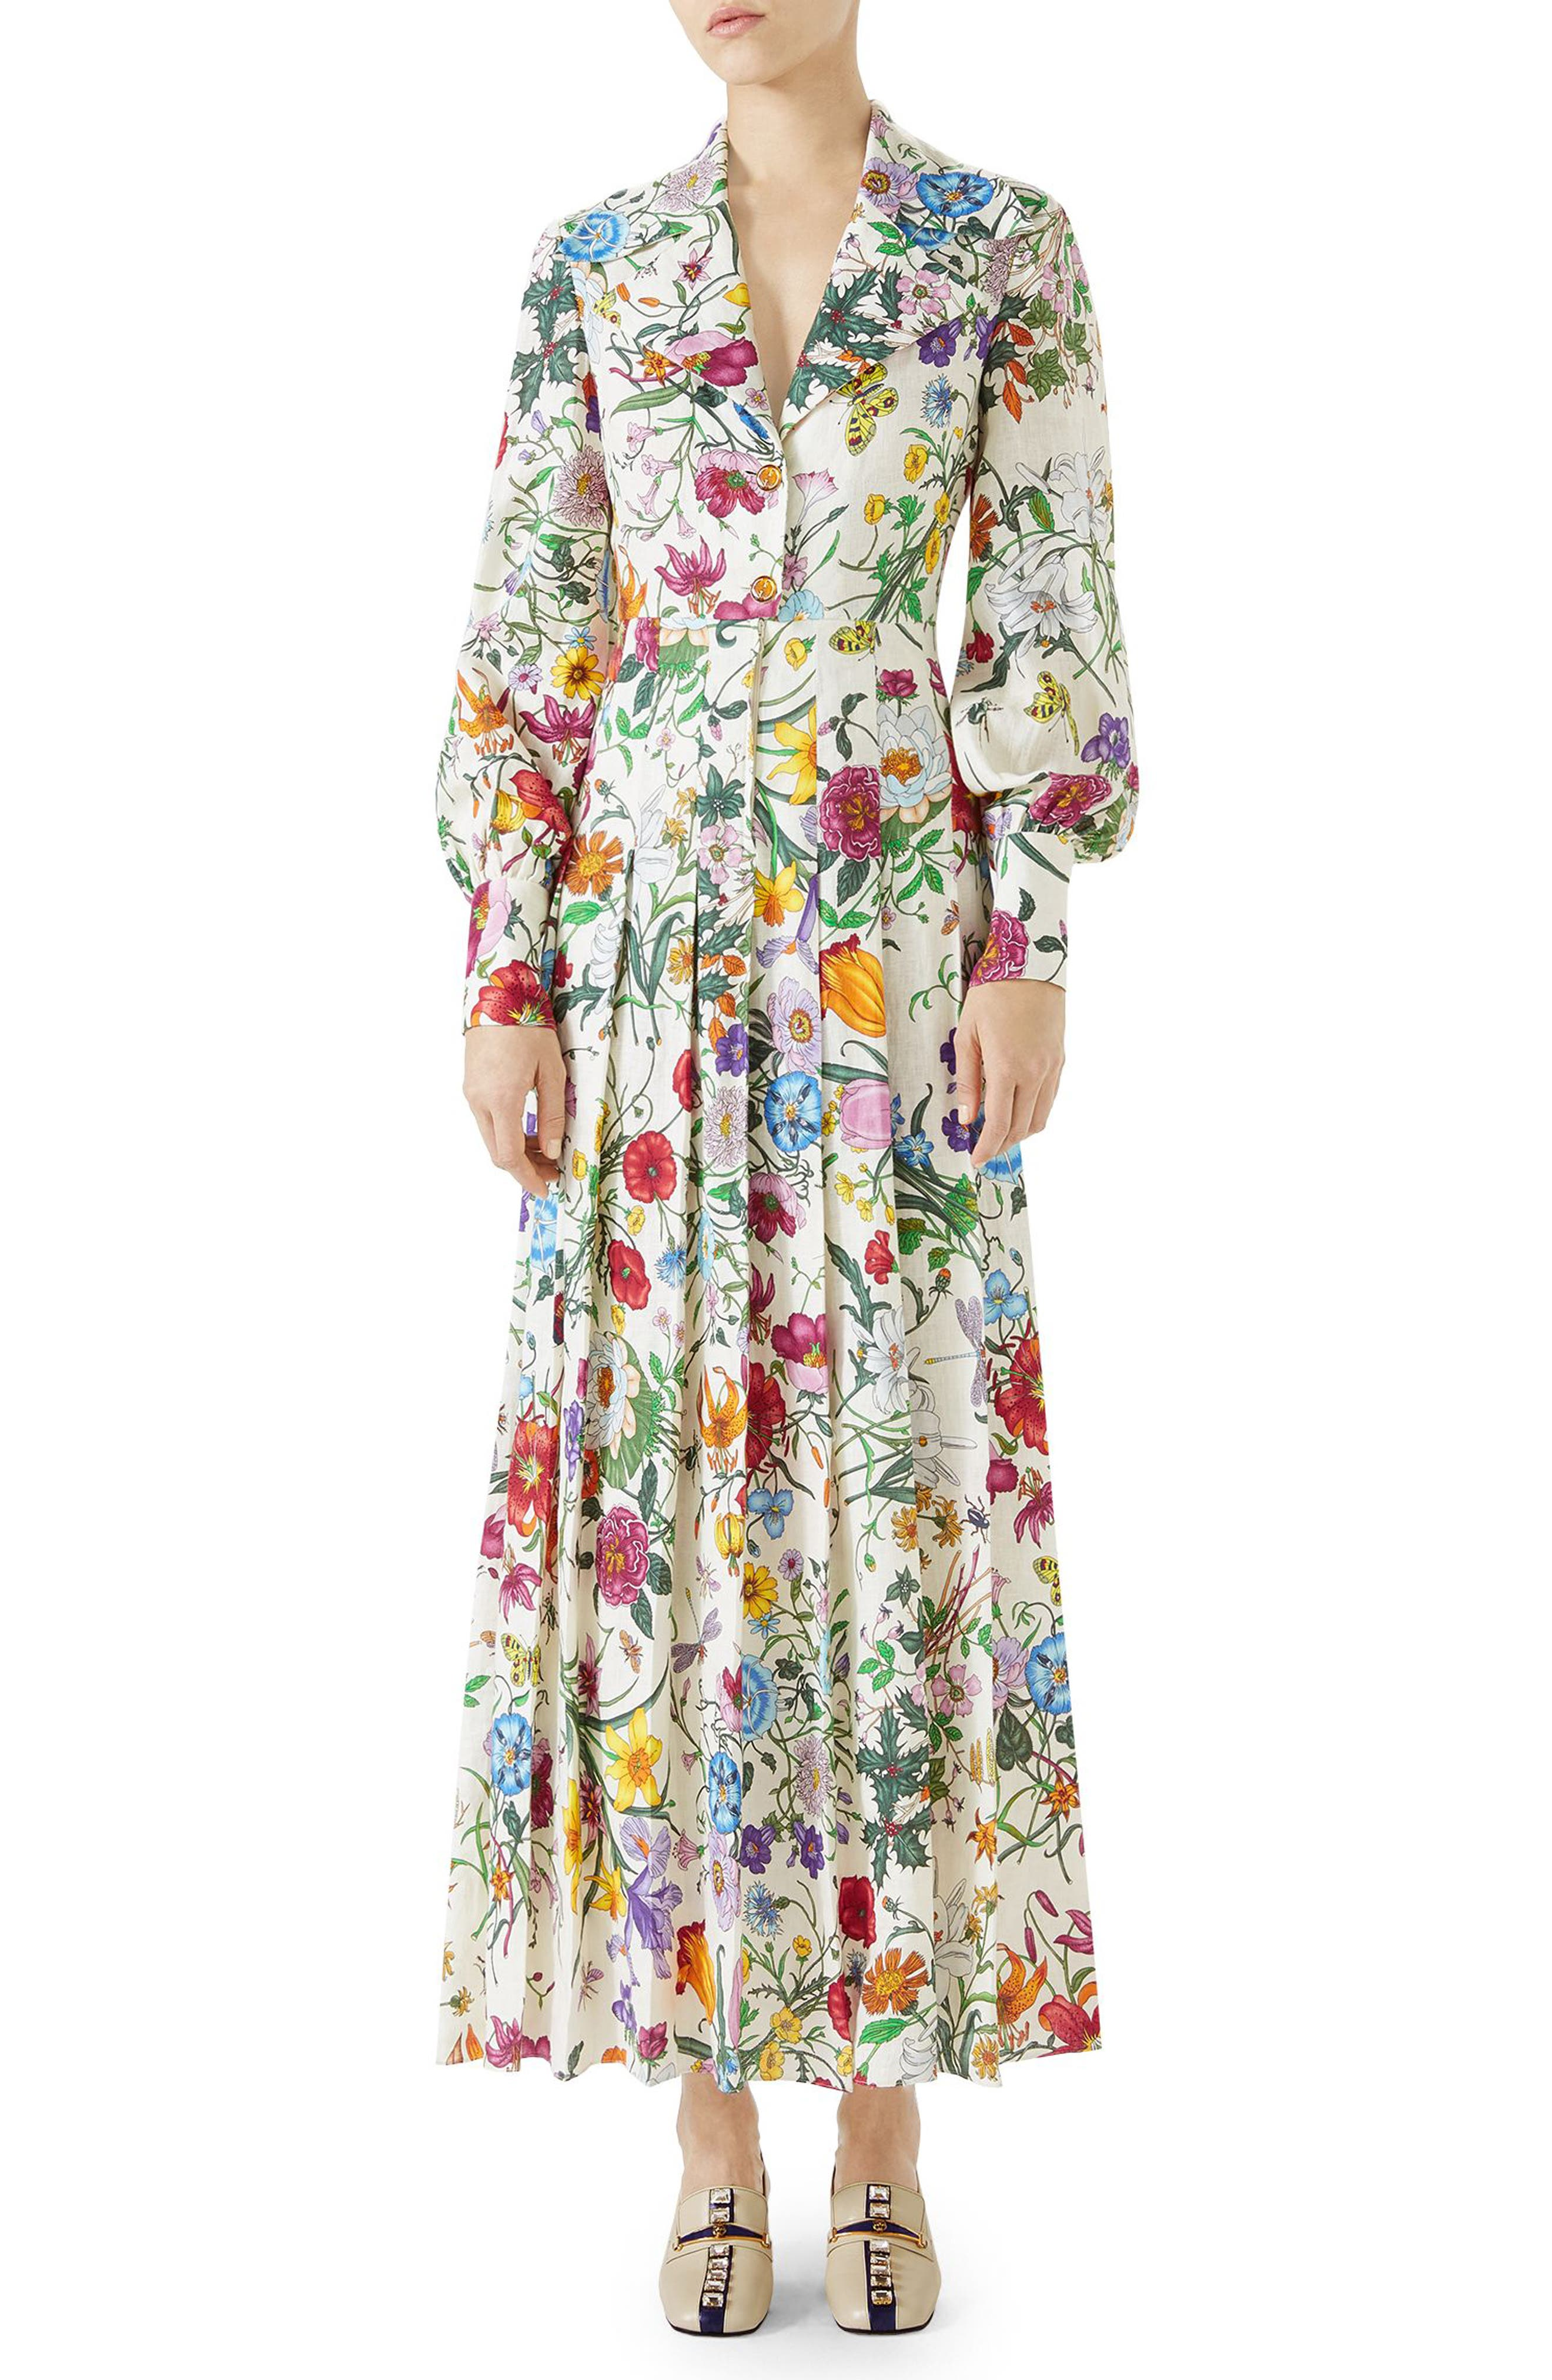 Puff Sleeve Pleated Silk Dress,                             Main thumbnail 1, color,                             Ivory/ Multicolor Print